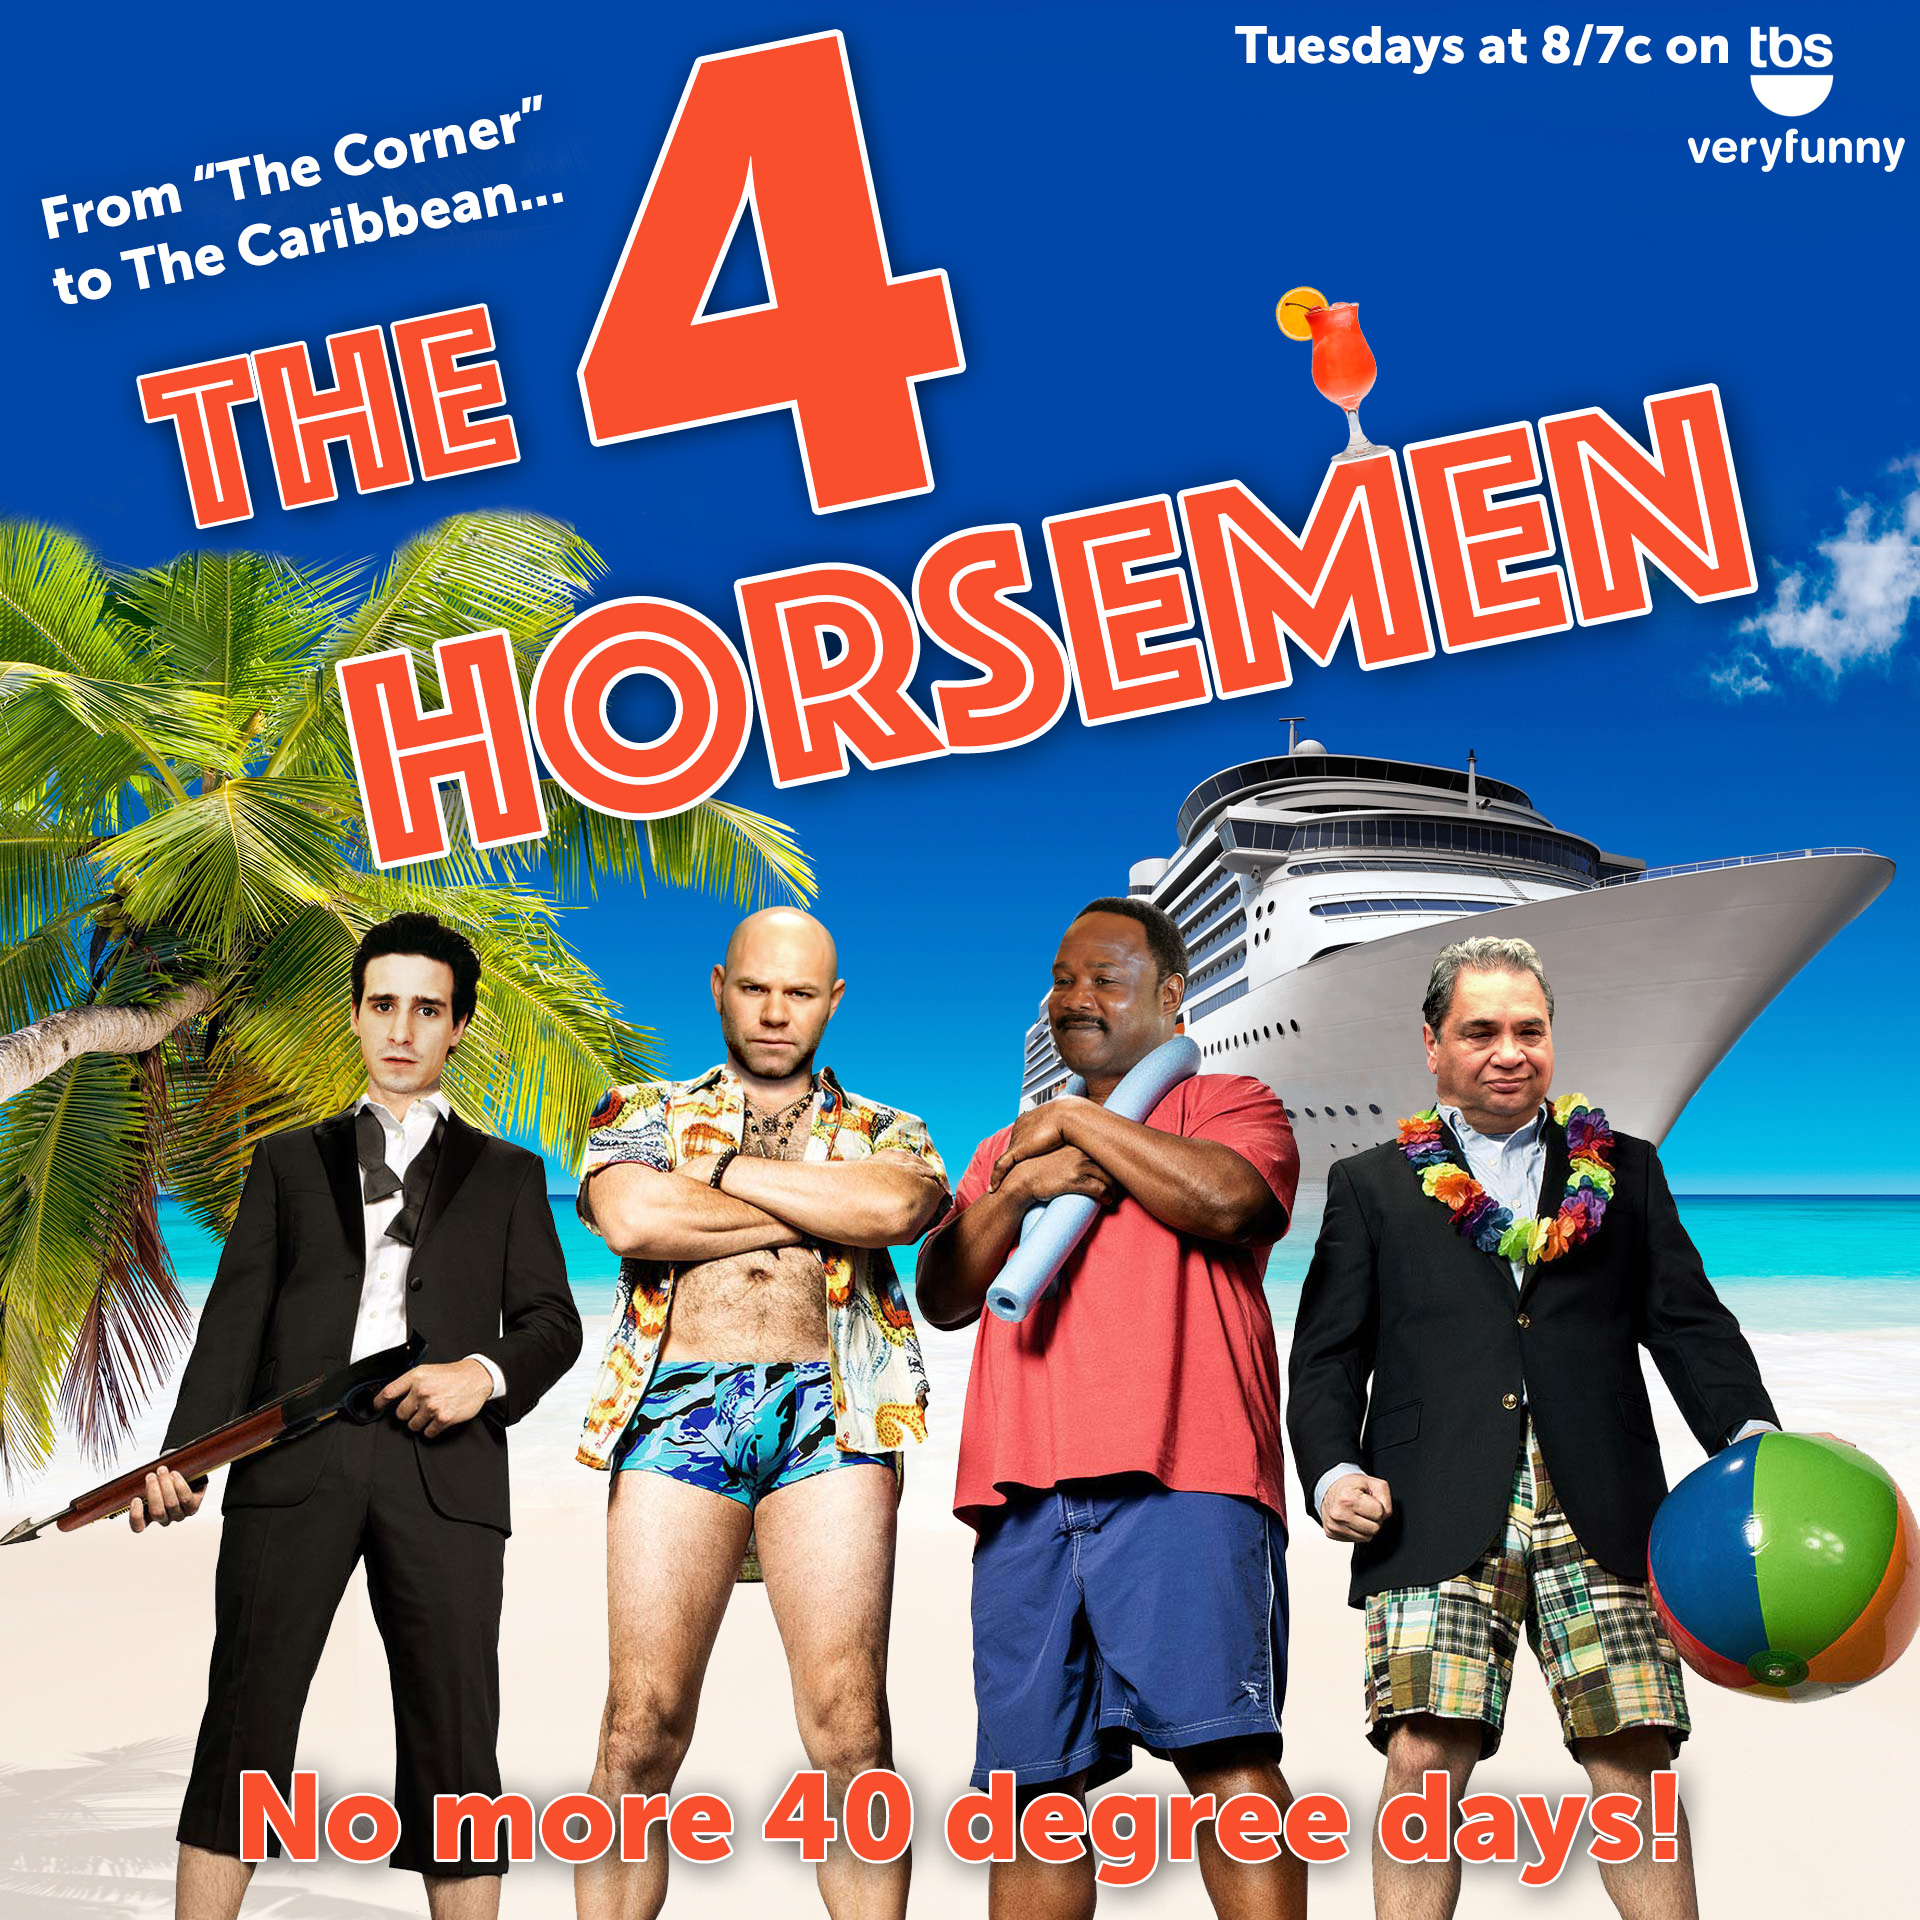 the 4 horseman, a new comedy on TBS featured your favorite characters from The Wire